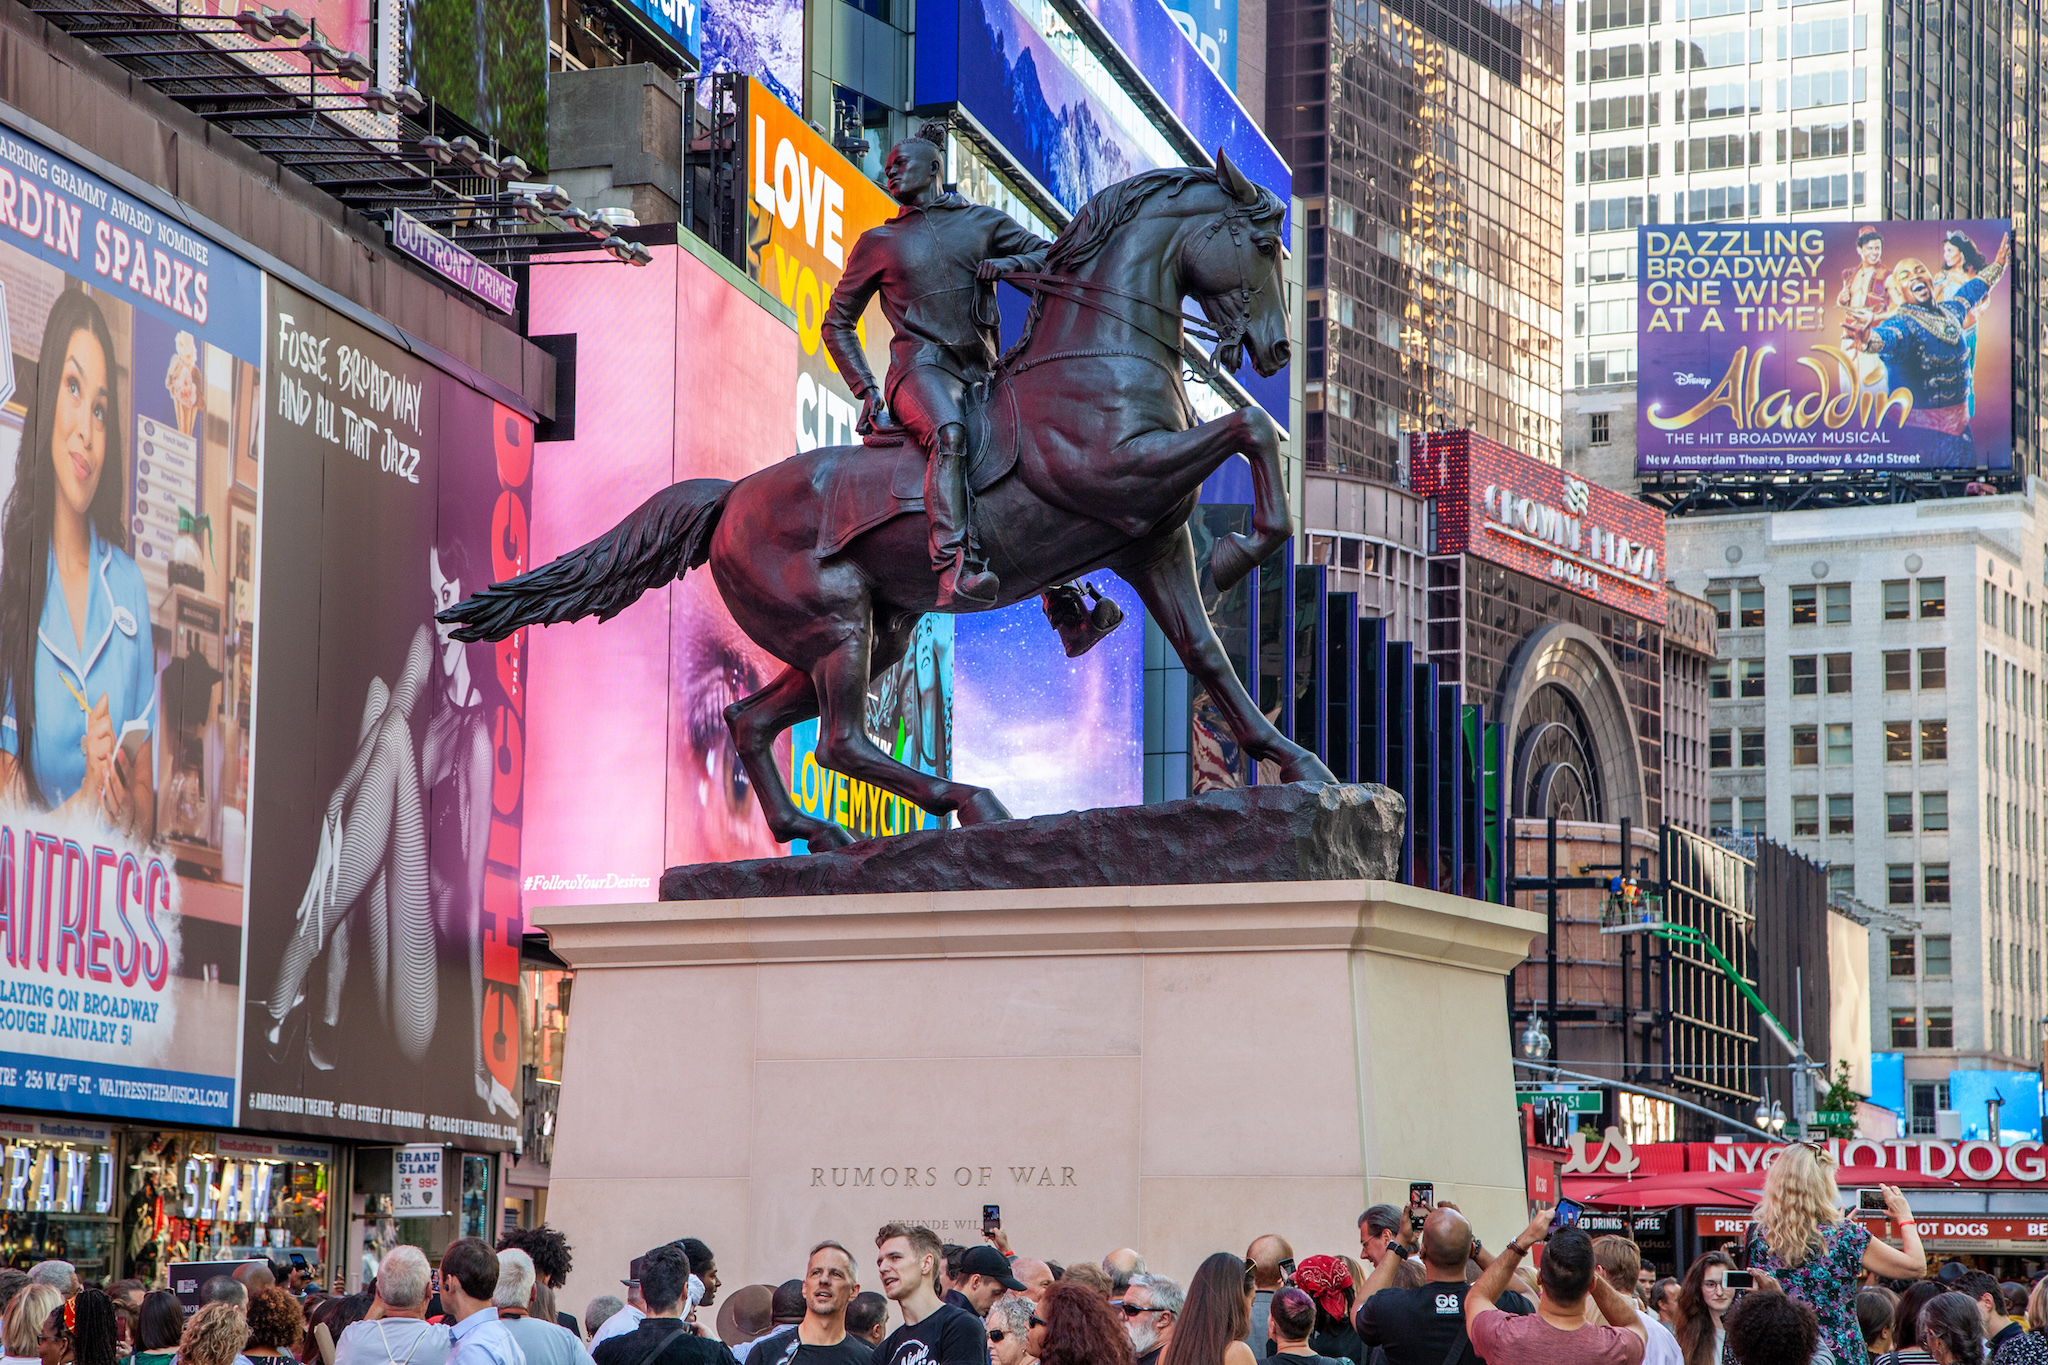 There's now a huge Kehinde Wiley horse in Times Square